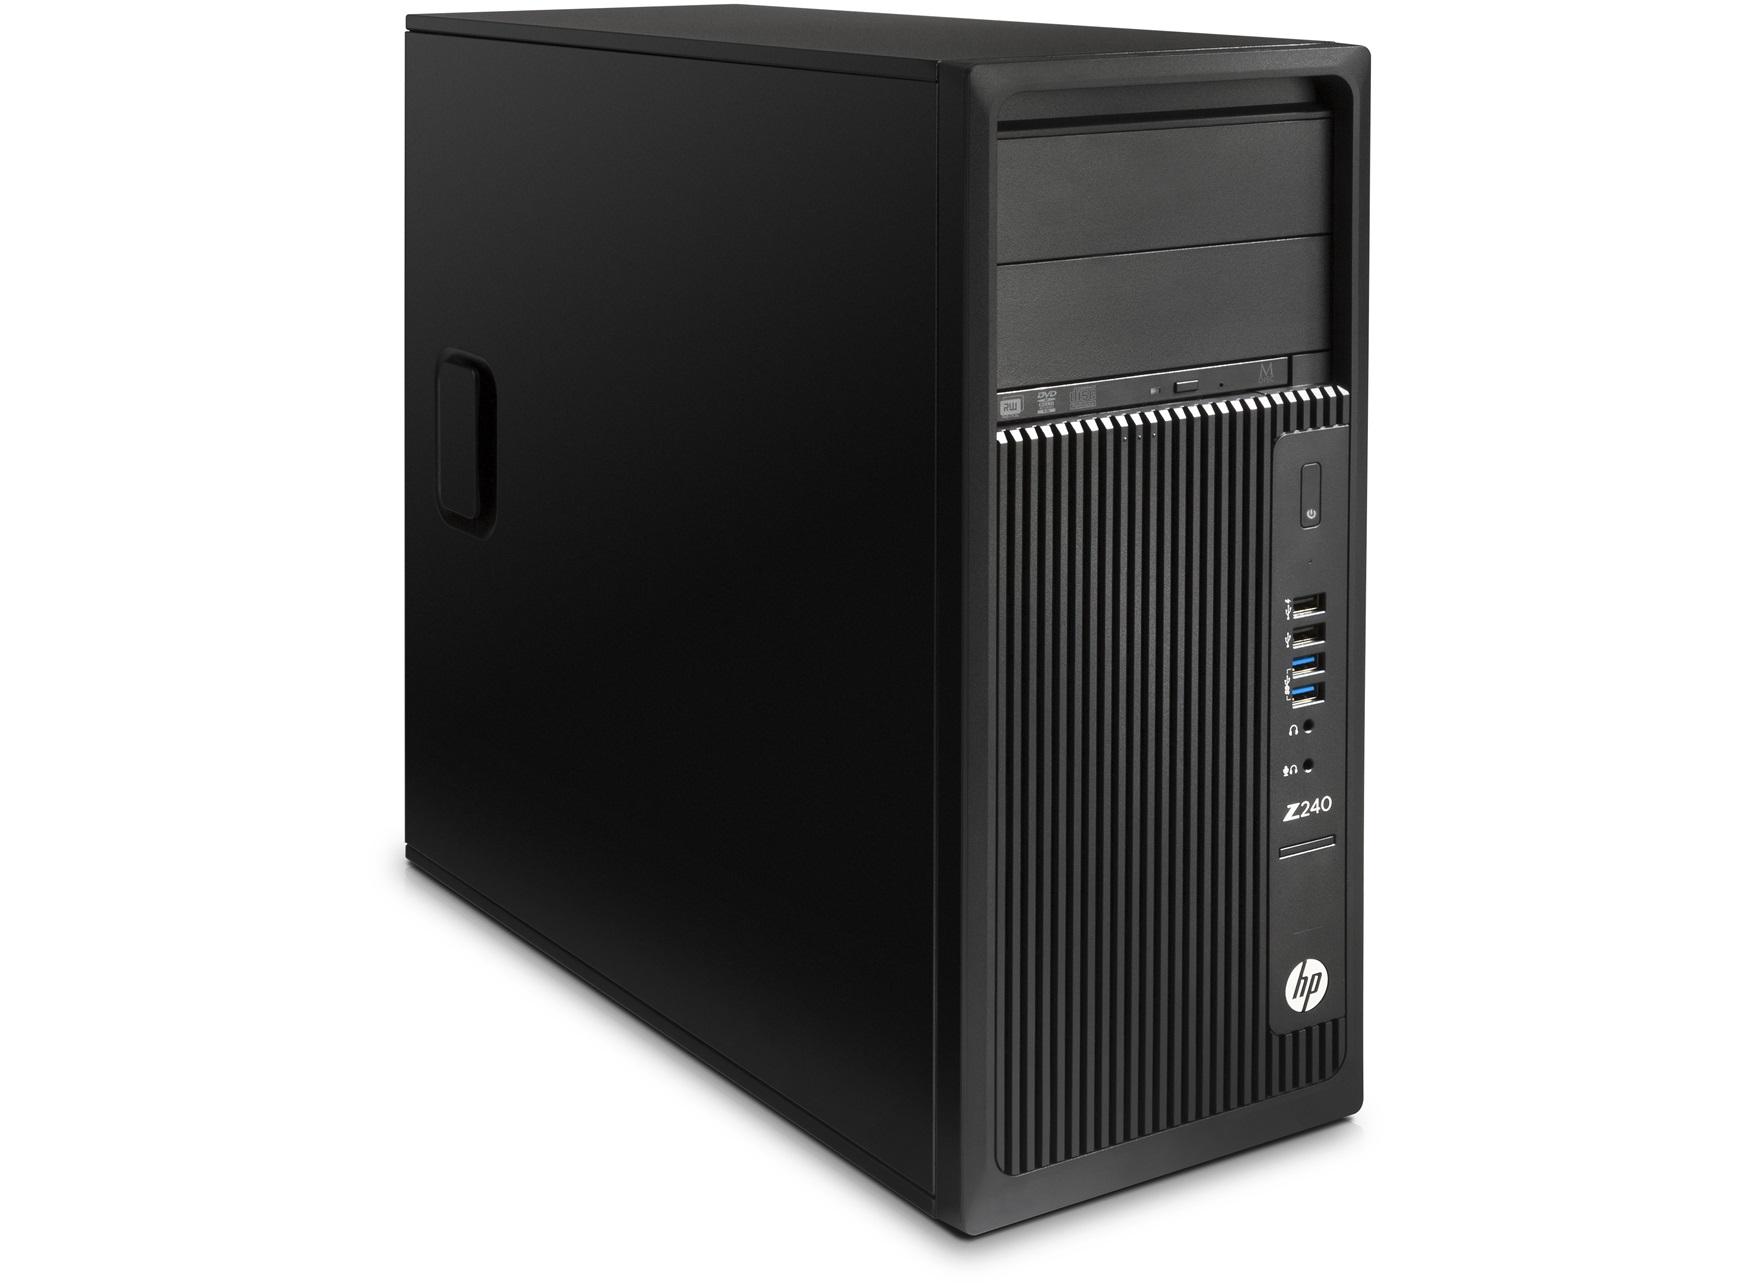 HP Z240 TWR Intel i7-6700 3.4GHz/16GB DDR4-2133 nECC (2x8GB)/512GB SSD PCIe/Intel HD GFX 530/Win 10 Pro